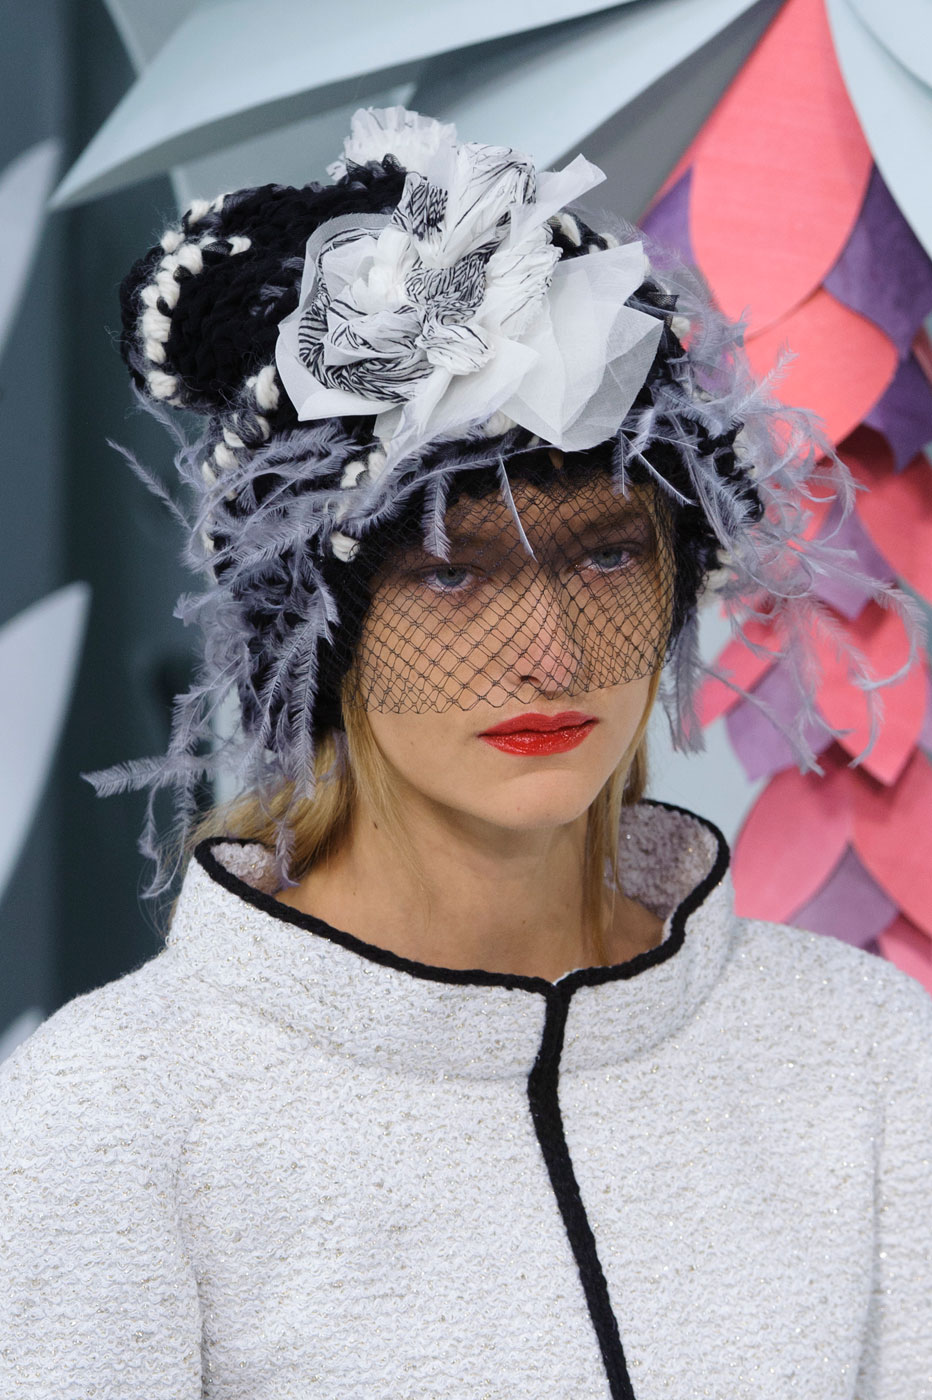 Chanel-fashion-runway-show-close-ups-haute-couture-paris-spring-summer-2015-the-impression-021